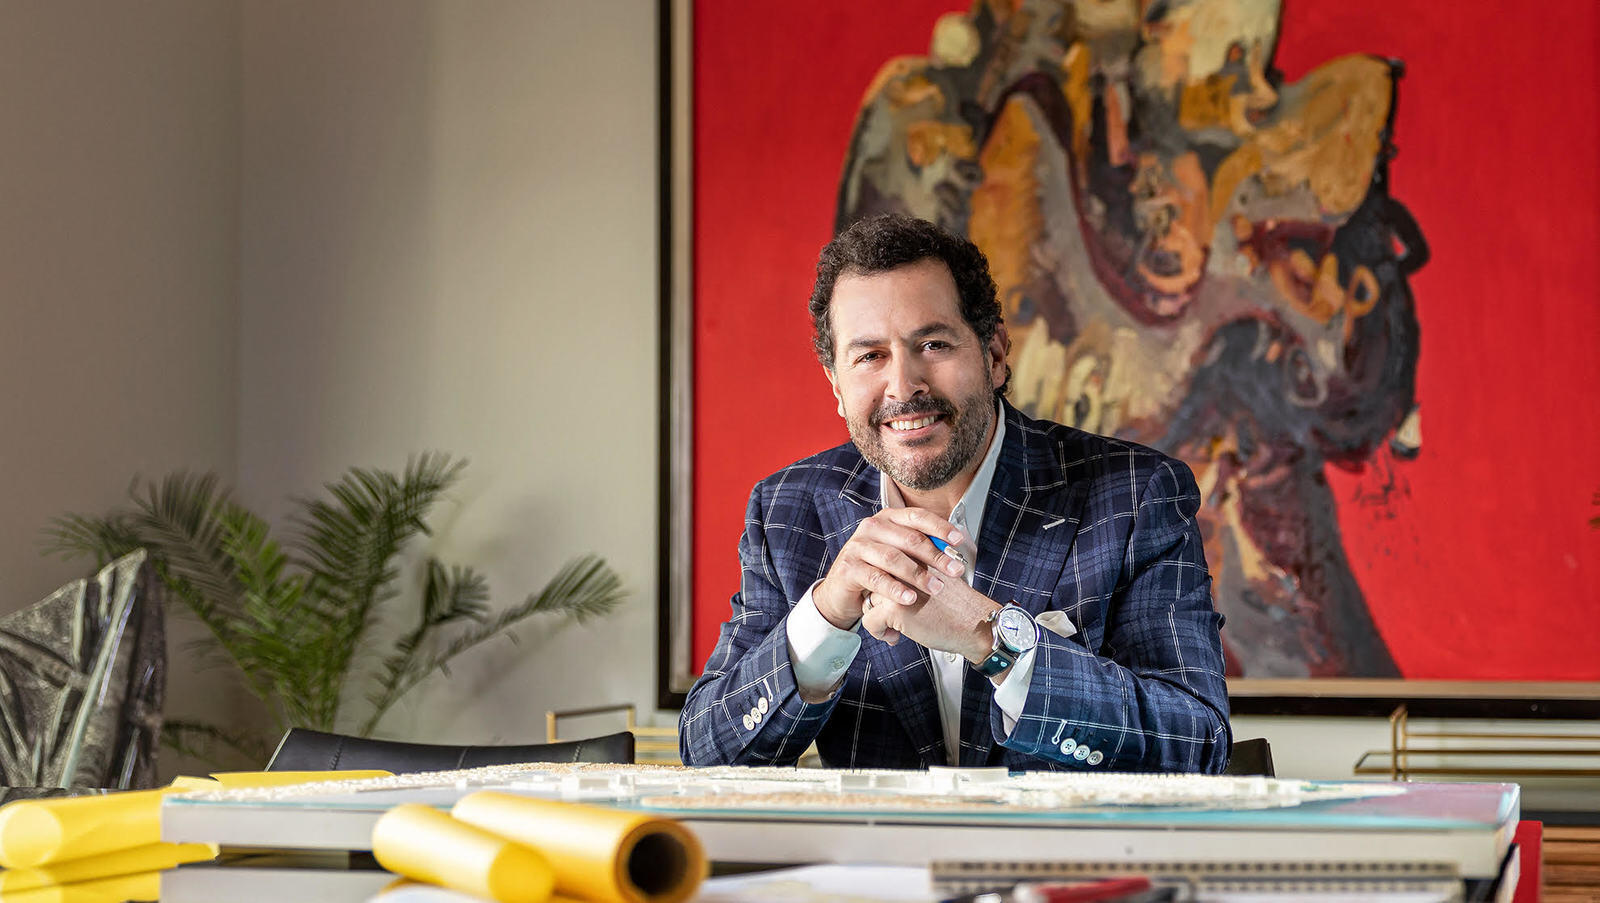 167: Águstin Pizá discusses creativity behind course design old and new